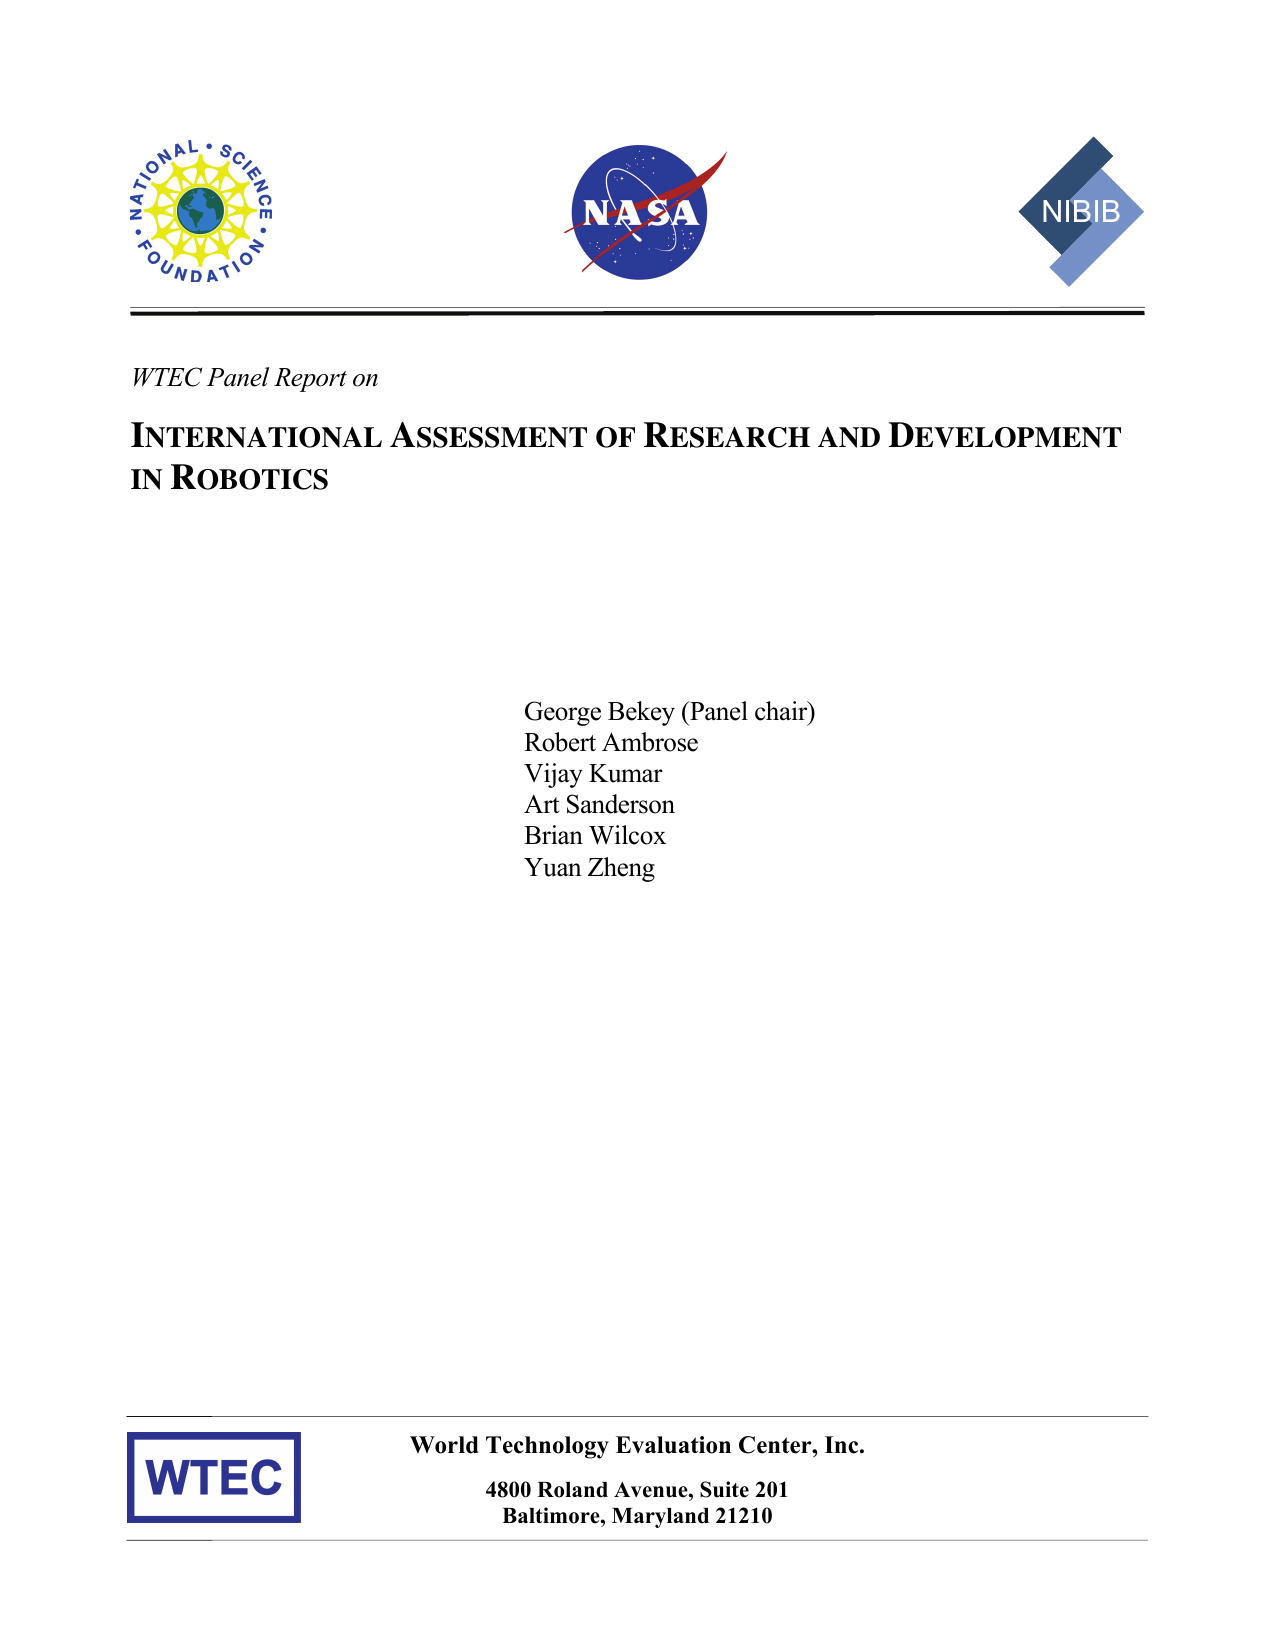 International Assessment Of Research And Development In Robotics 1992 Gm Geo Prism Central Junction Fuse Box Diagram 018535471 1 97a5c0ffe21f7795dfcd505976a3de83